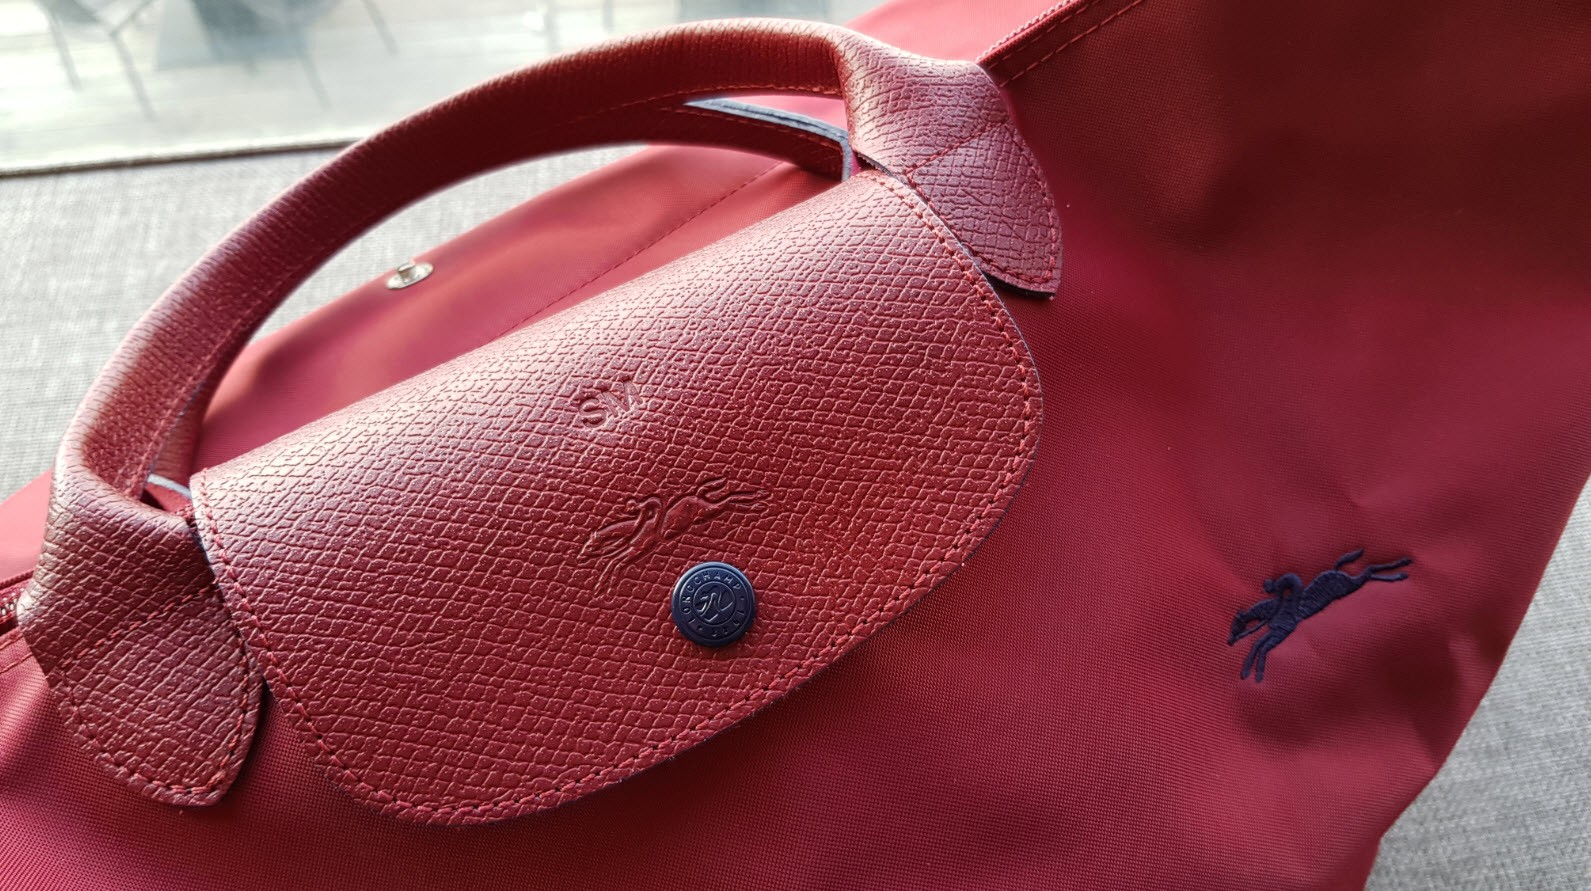 Sac pliage Longchamp pour weekend